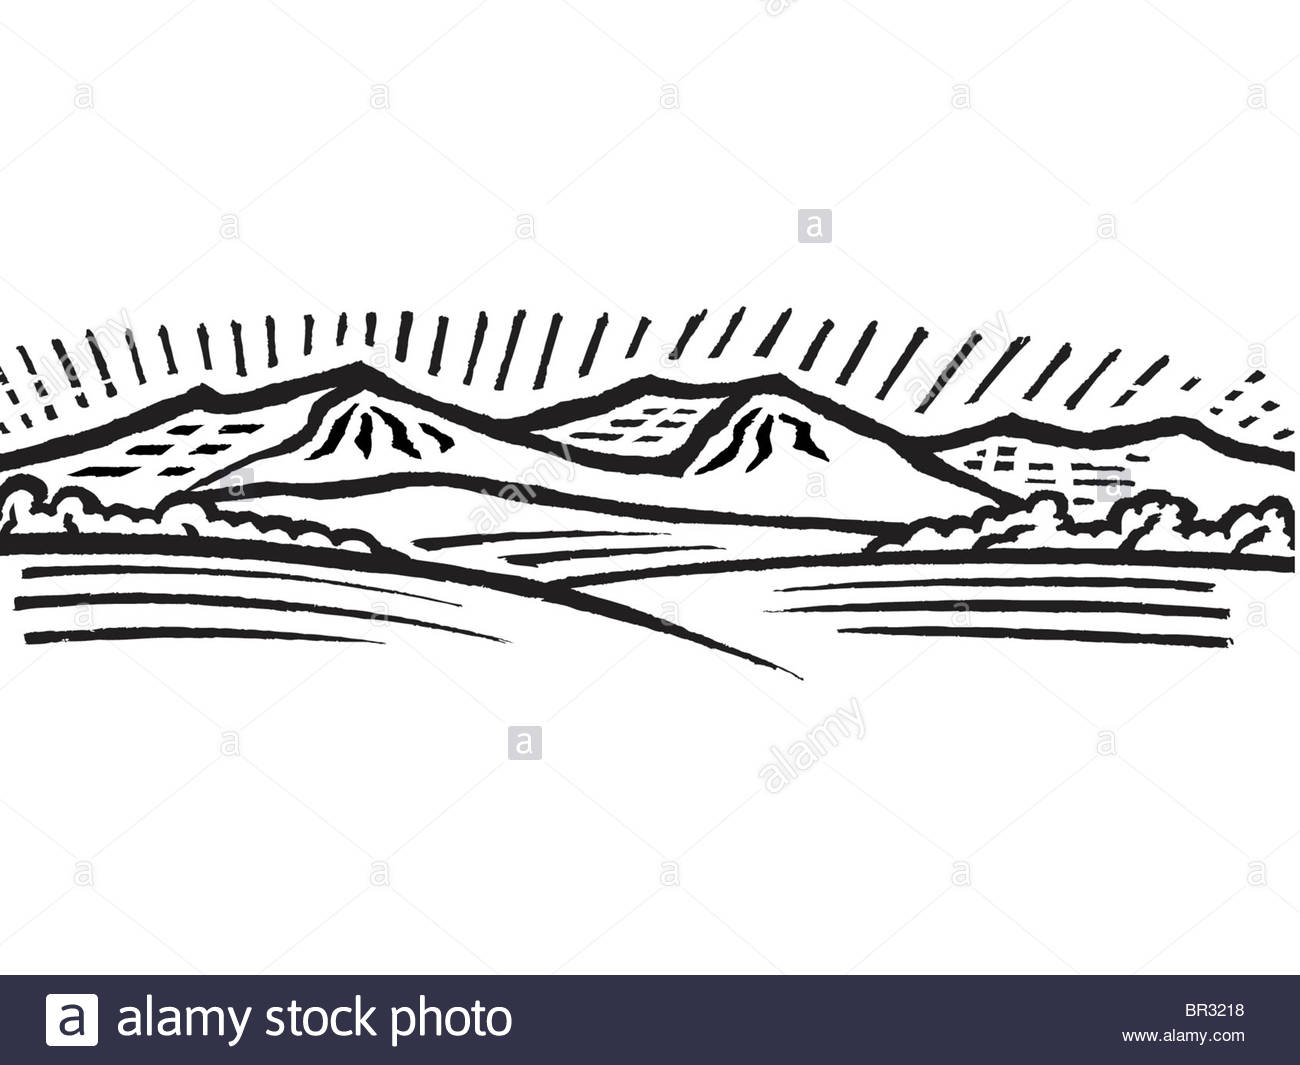 1300x1065 A Black And White Drawing Of Distant Hills Stock Photo 31414916